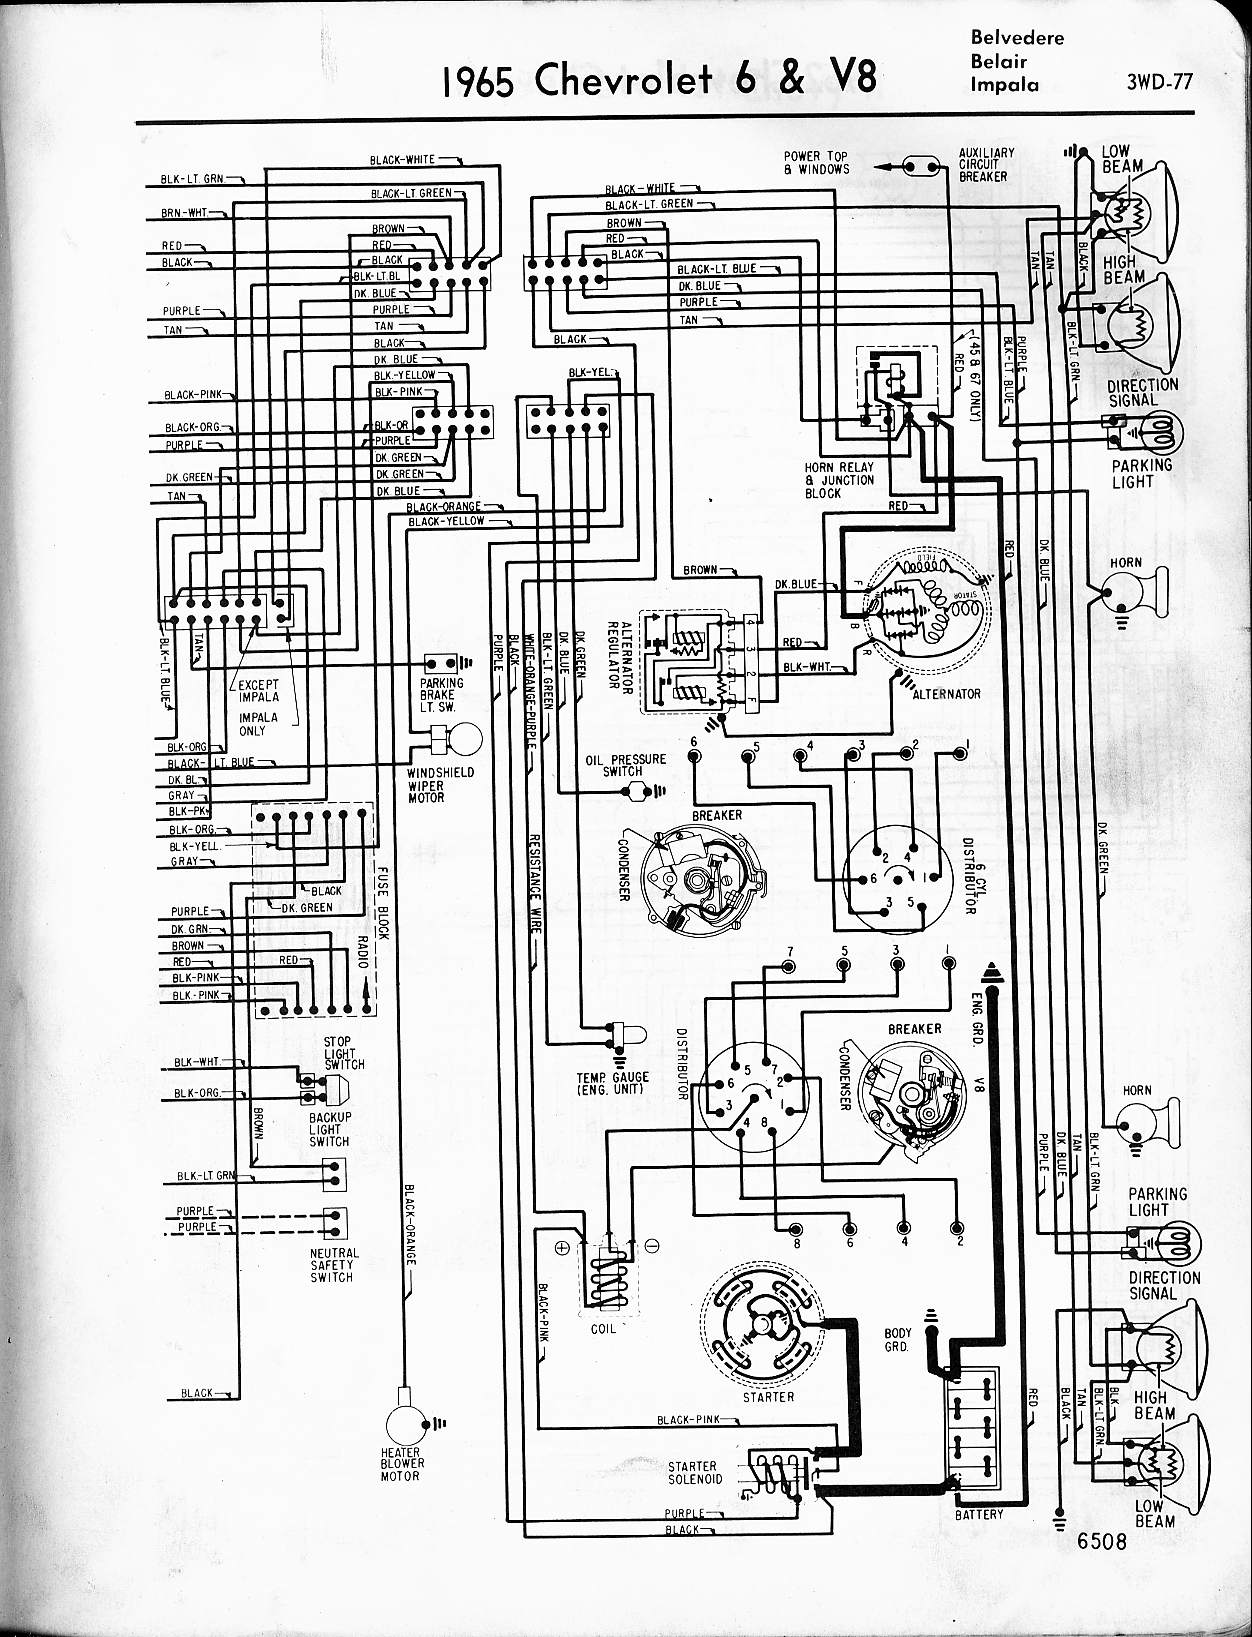 1965 impala wiring diagram online schematic diagram u2022 rh holyoak co Hydra-Sports Wiring Diagram 1997 LS175 1965 chevelle ss malibu dash wiring diagram